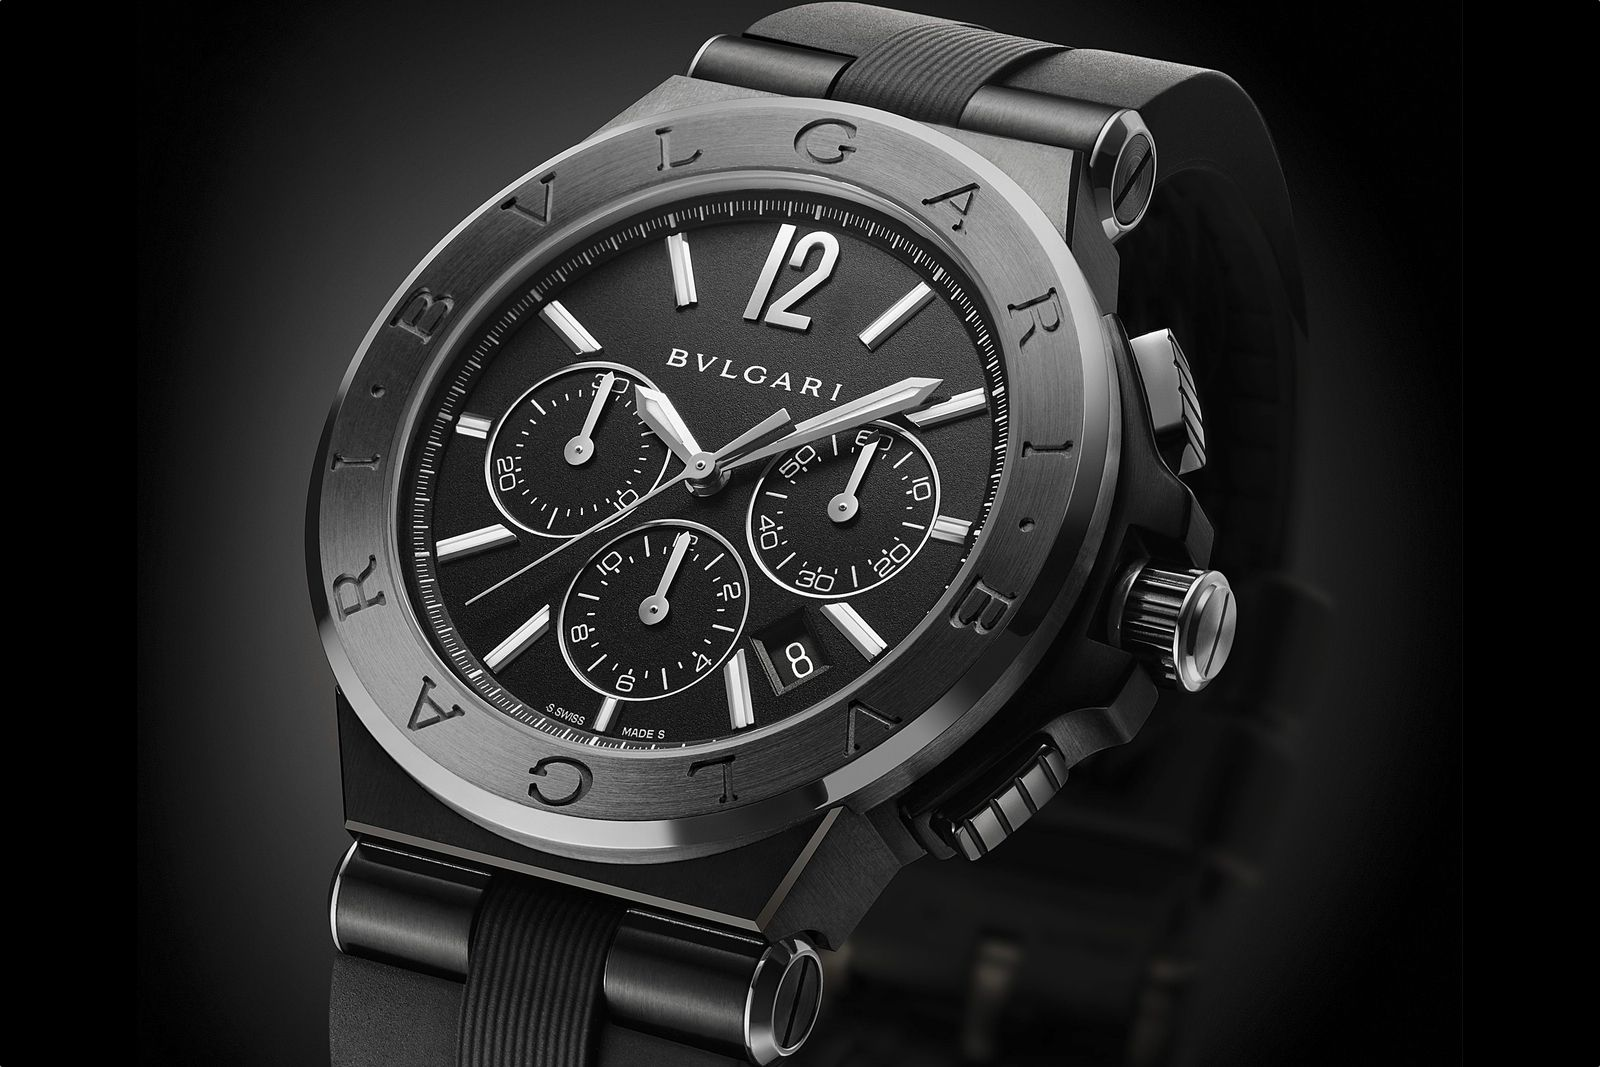 Introducing The Bulgari Diagono Ultranero Chronograph Bvlgari Watches Bulgari Watch Beautiful Watches